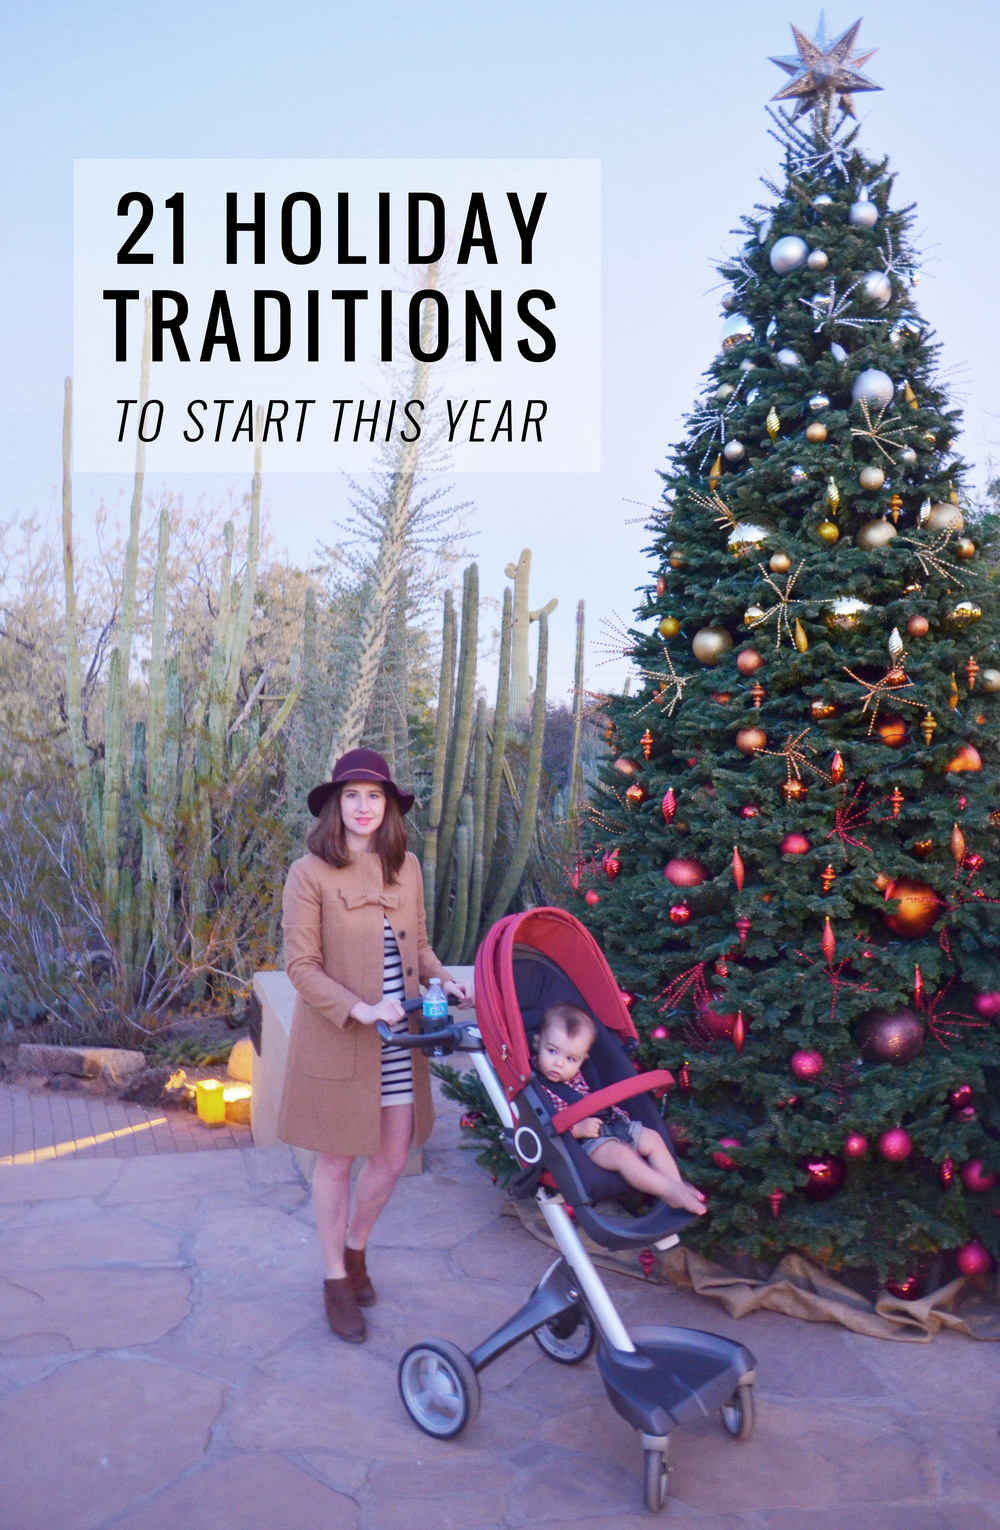 21 Christmas & Holiday Tradition Ideas to Start With Your Family | Momma Society-The Community of Modern Moms | www.MommaSociety.com